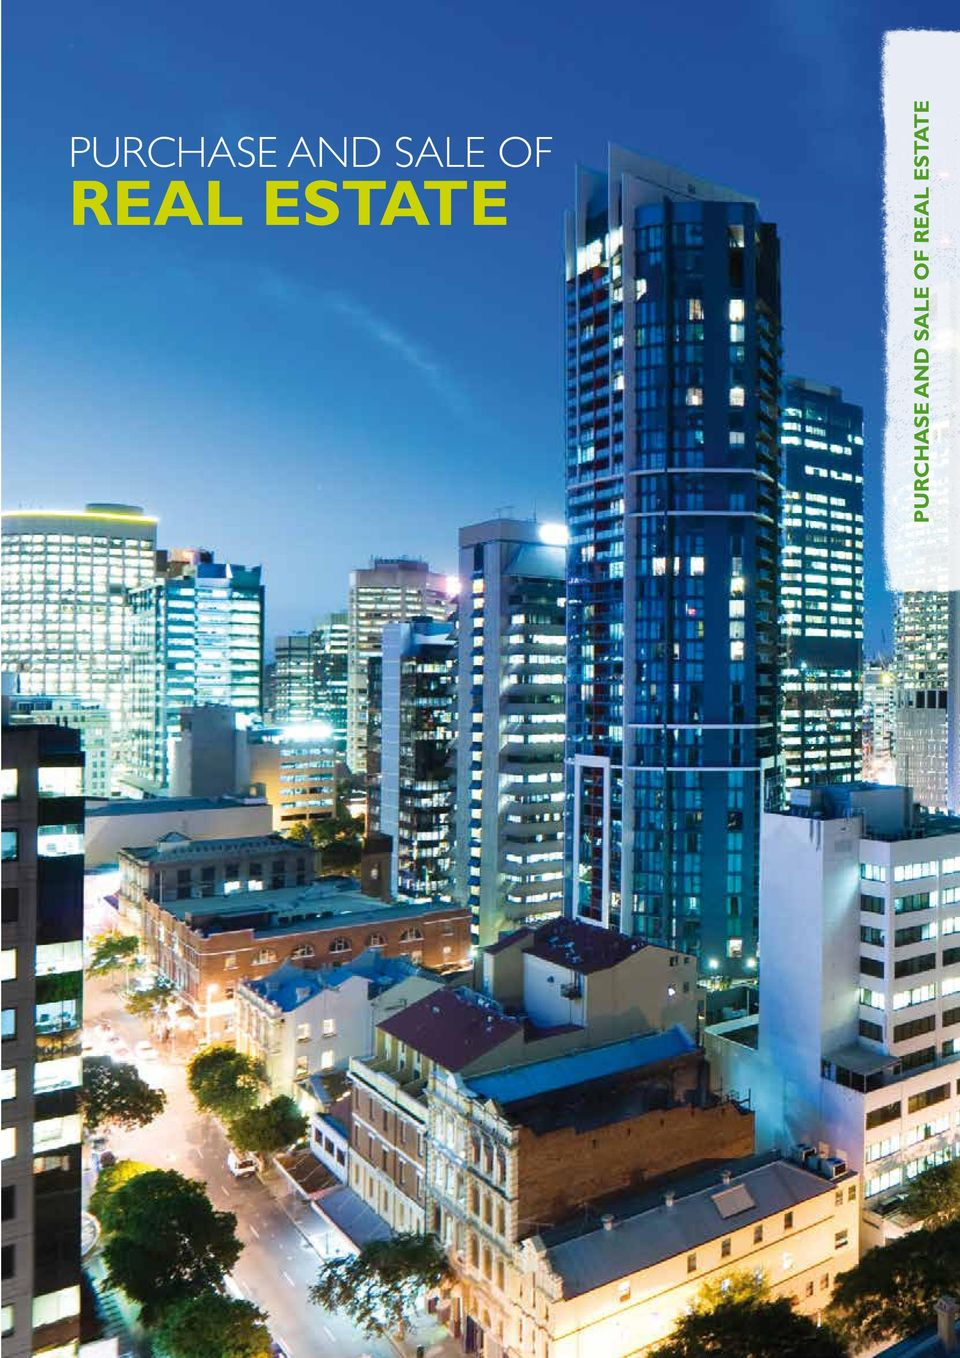 Estate Investment in